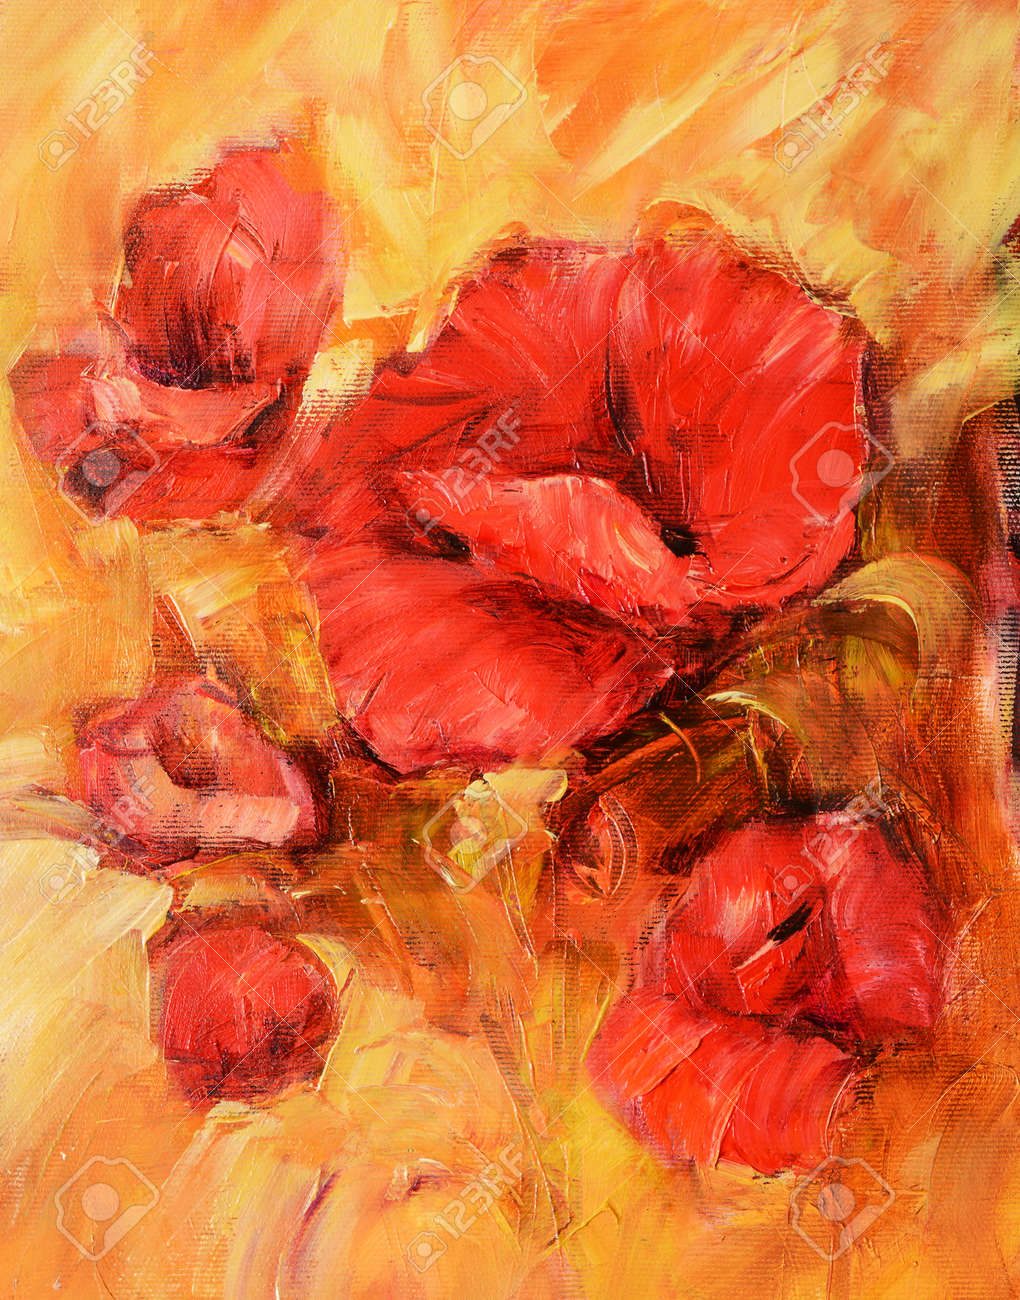 Poppy flowers handmade oil painting on canvas stock photo picture poppy flowers handmade oil painting on canvas stock photo 92122946 mightylinksfo